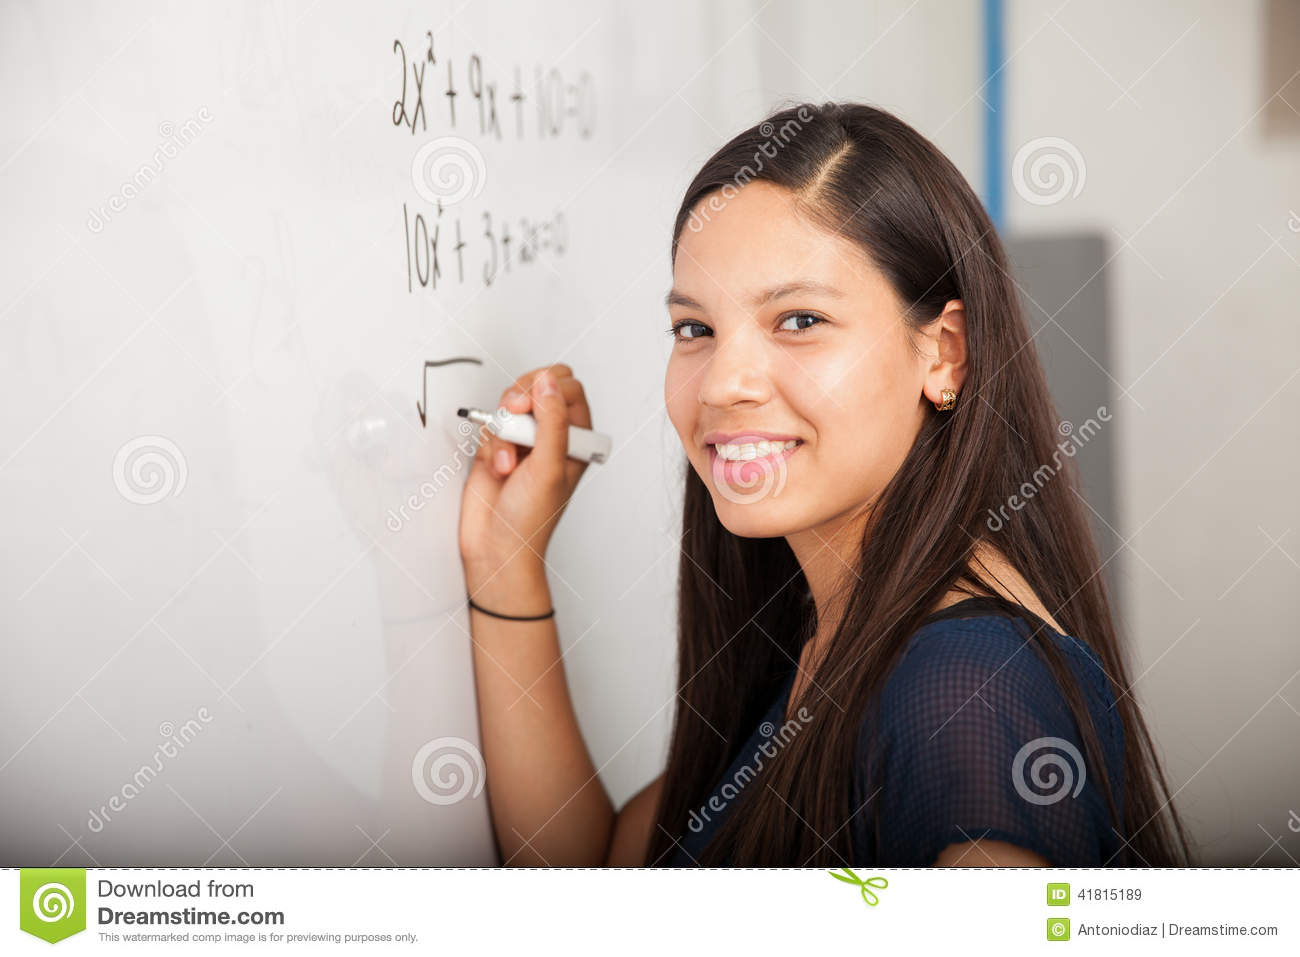 Happy Math Student In Class Stock Image - Image of classroom, school ...